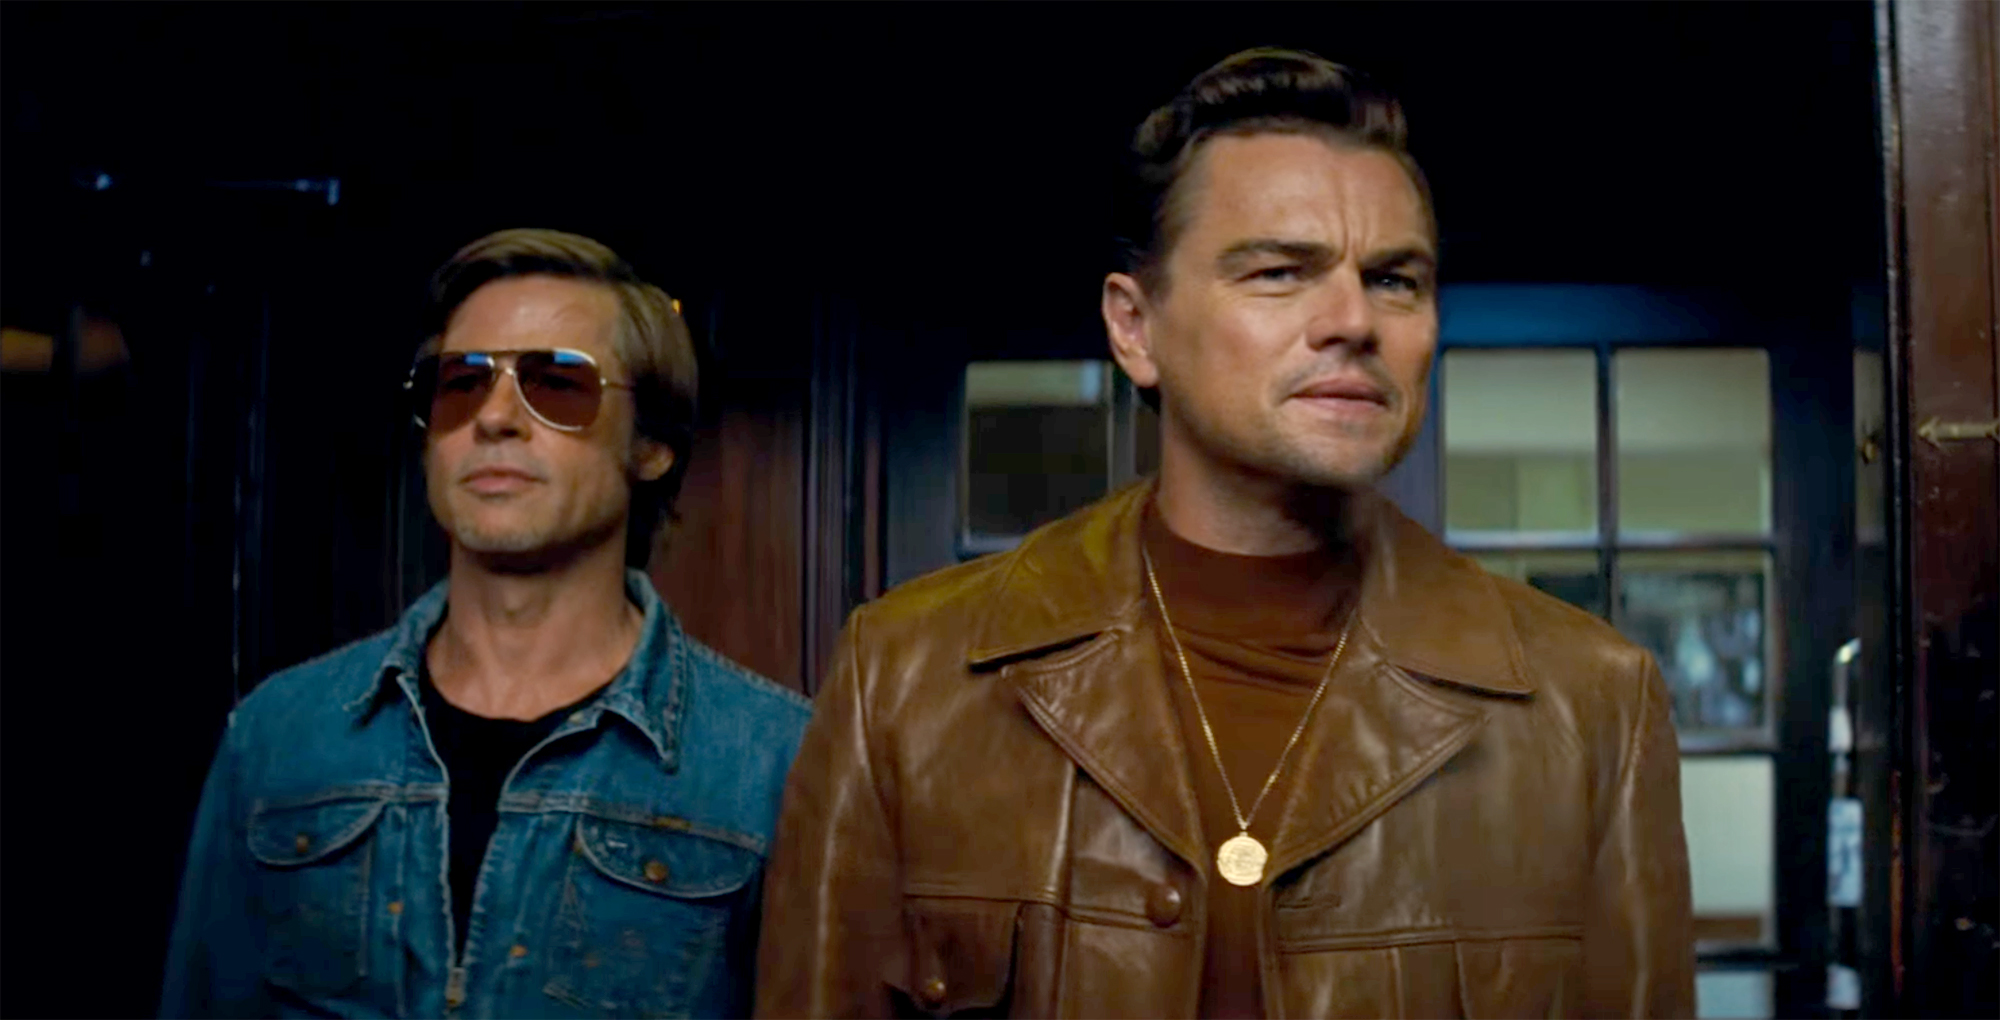 Leonardo DiCaprio and Brad Pitt in 'Once Upon a Time in Hollywood'